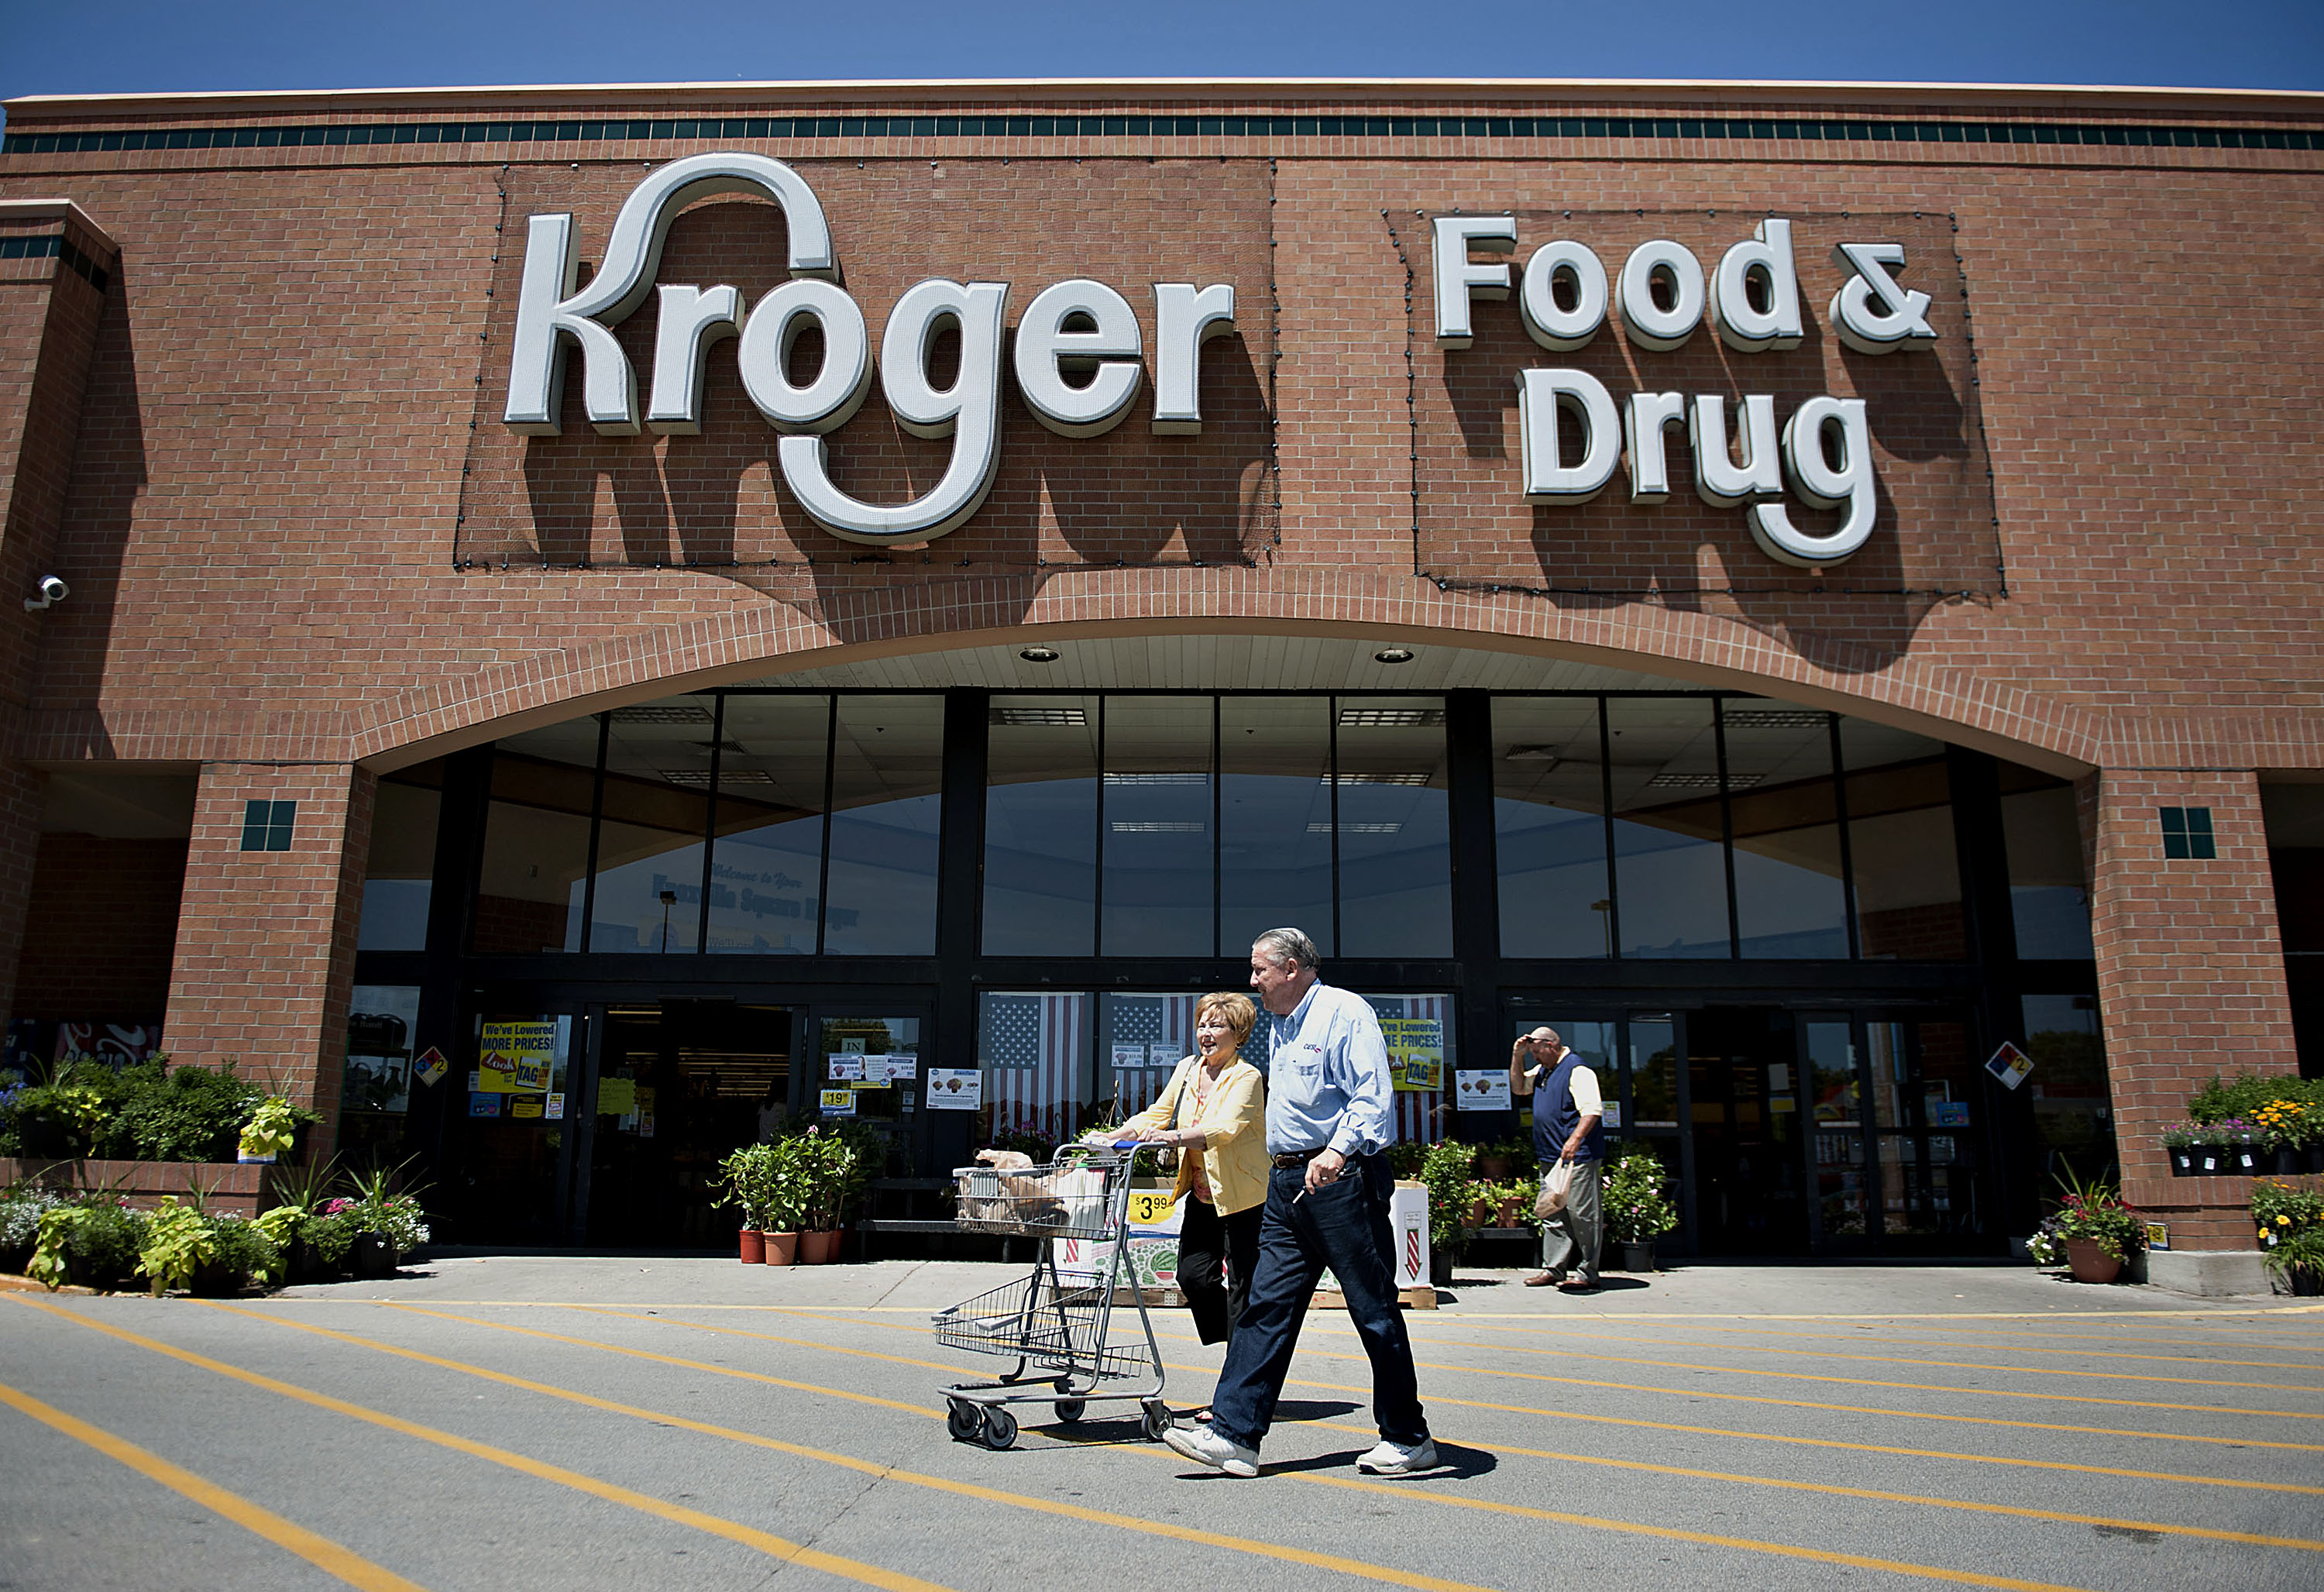 Kroger, the second largest supermarket in the U.S., has hired DDB as its advertising agency of record.